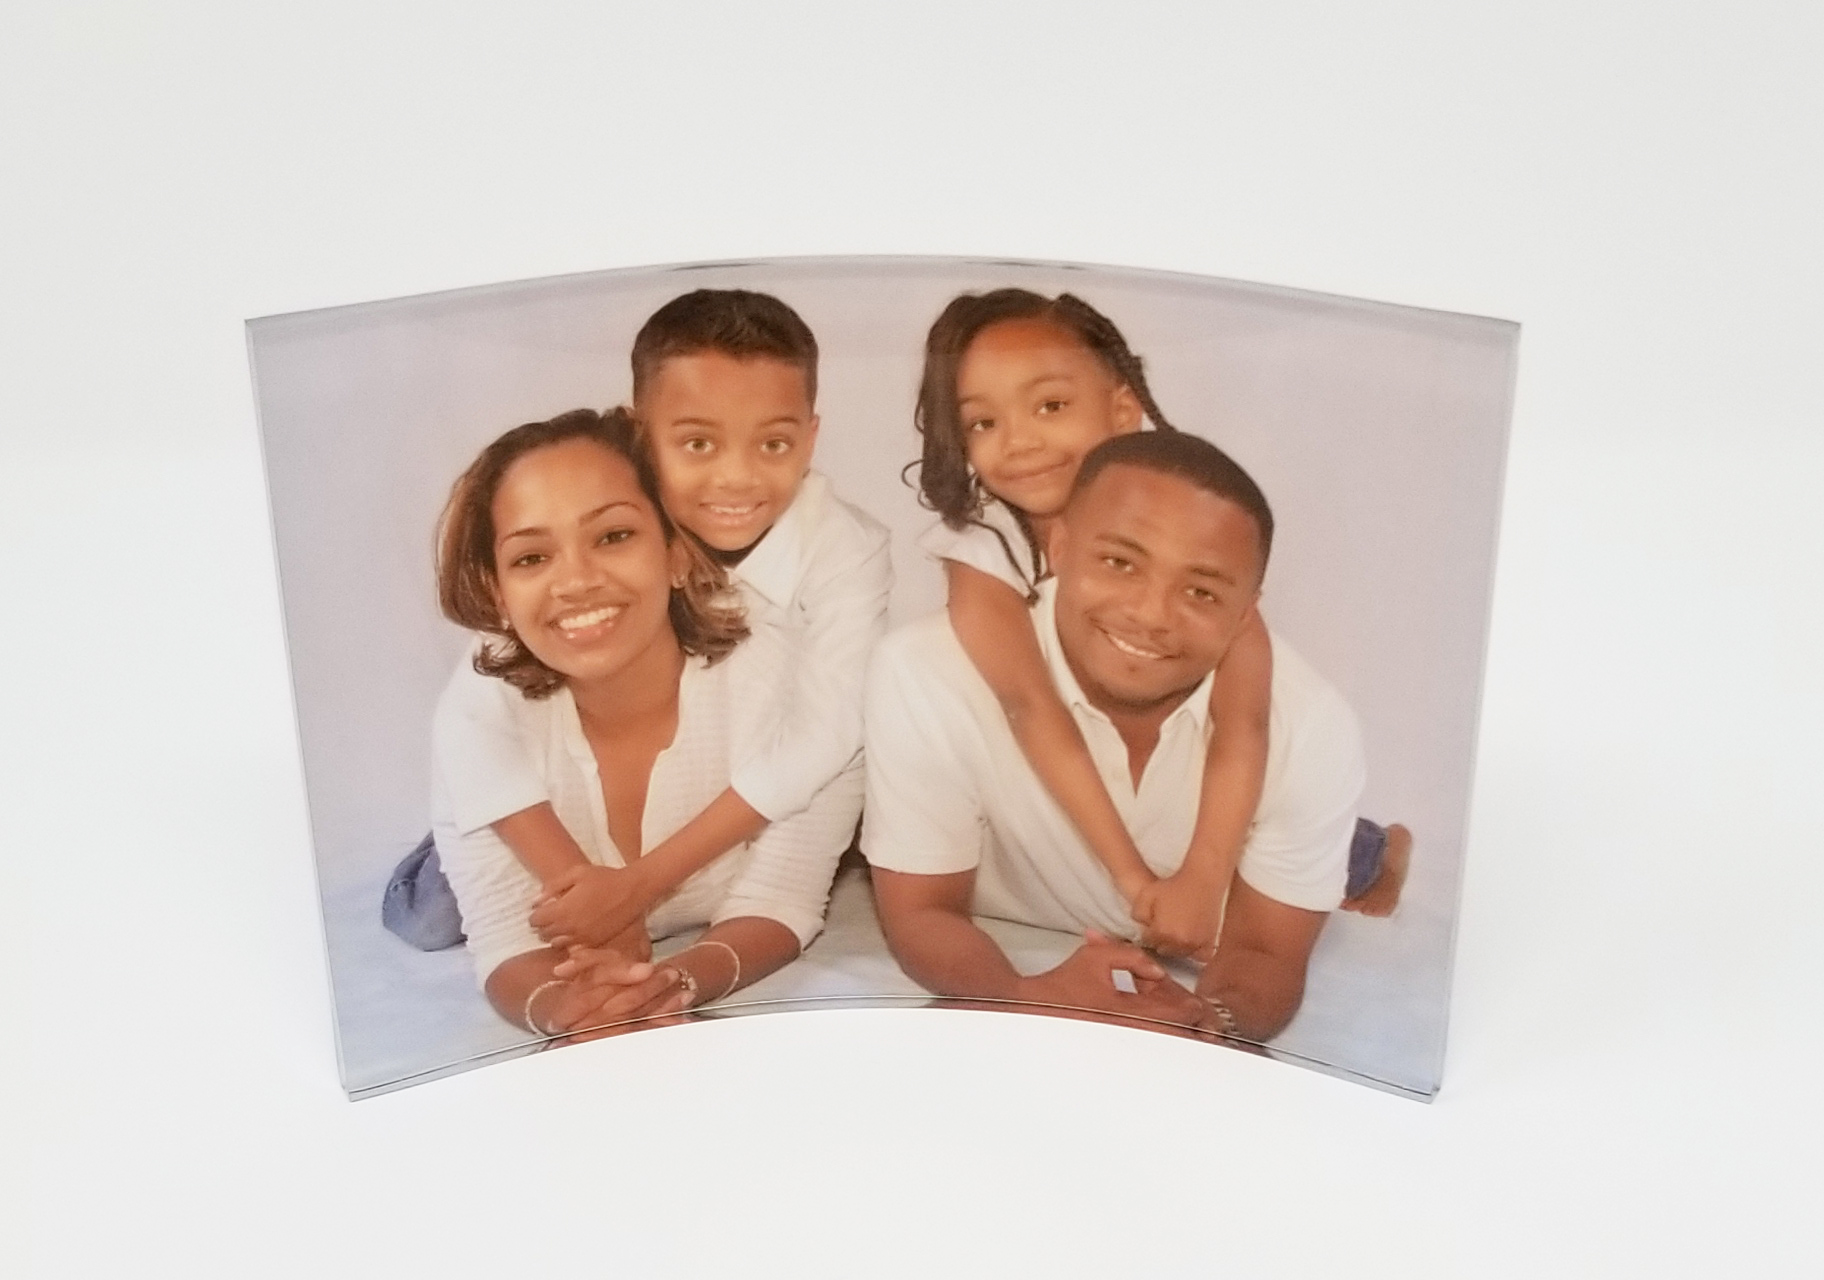 "Curved Clear Acrylic, 5"" x 7"" x .22"" with Square Corners. Colors on this durable acrylic are vibrant and crisp. Light enhances the window effect and the image is beautiful from the front or back.  NOTE: Curved clear acrylic come in a variety of sizes. Contact us for more information."